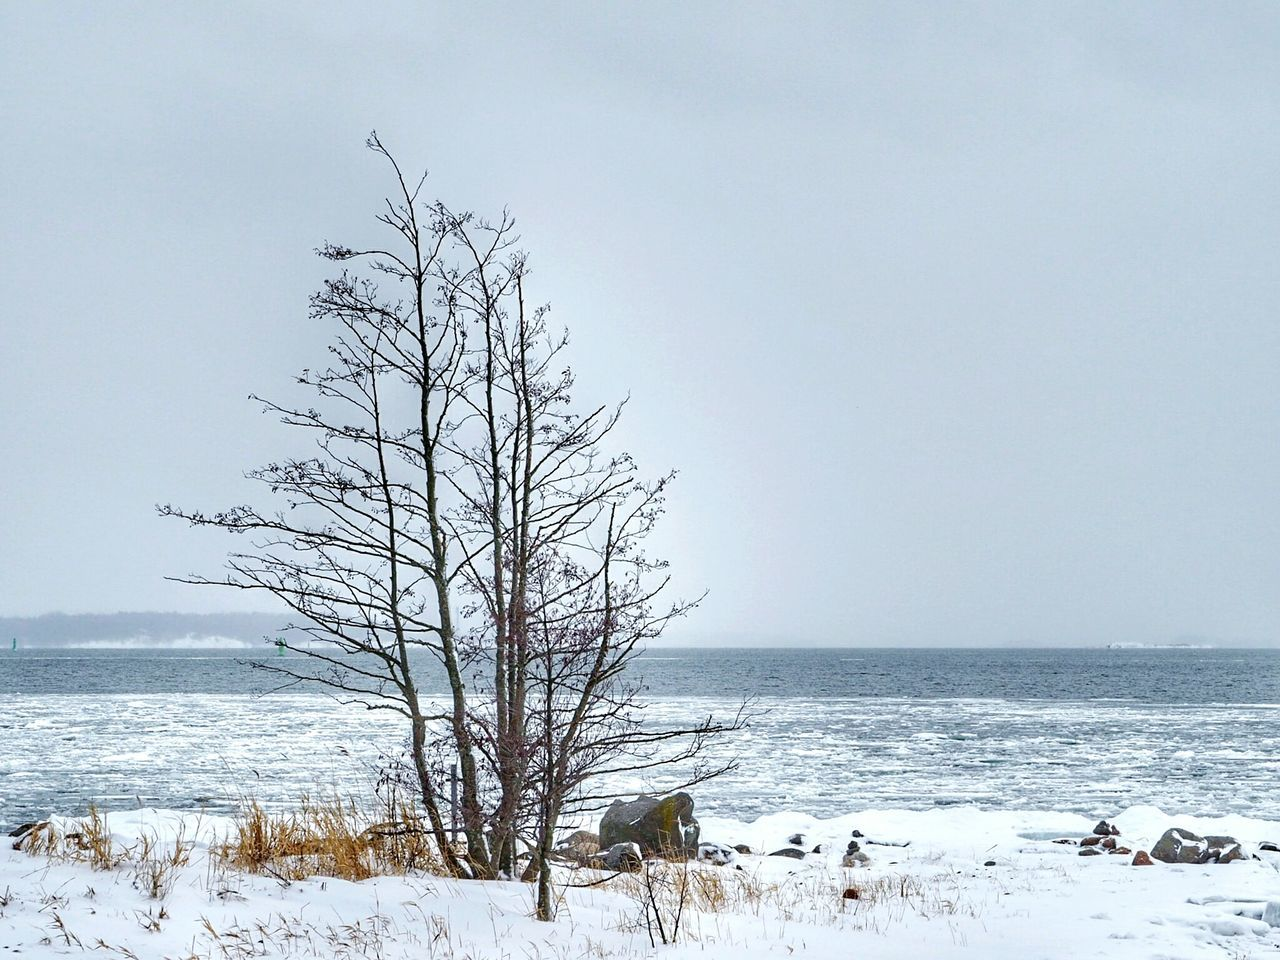 Nature Water Tree Outdoors Landscape No People Sky Cold Temperature Sea Snow Horizon Over Water Day Beauty In Nature Beach Frozen Sea Frozen Nature Ice Icedwater Bare Tree Winter Tranquility Winter Nature Outside Winter Time